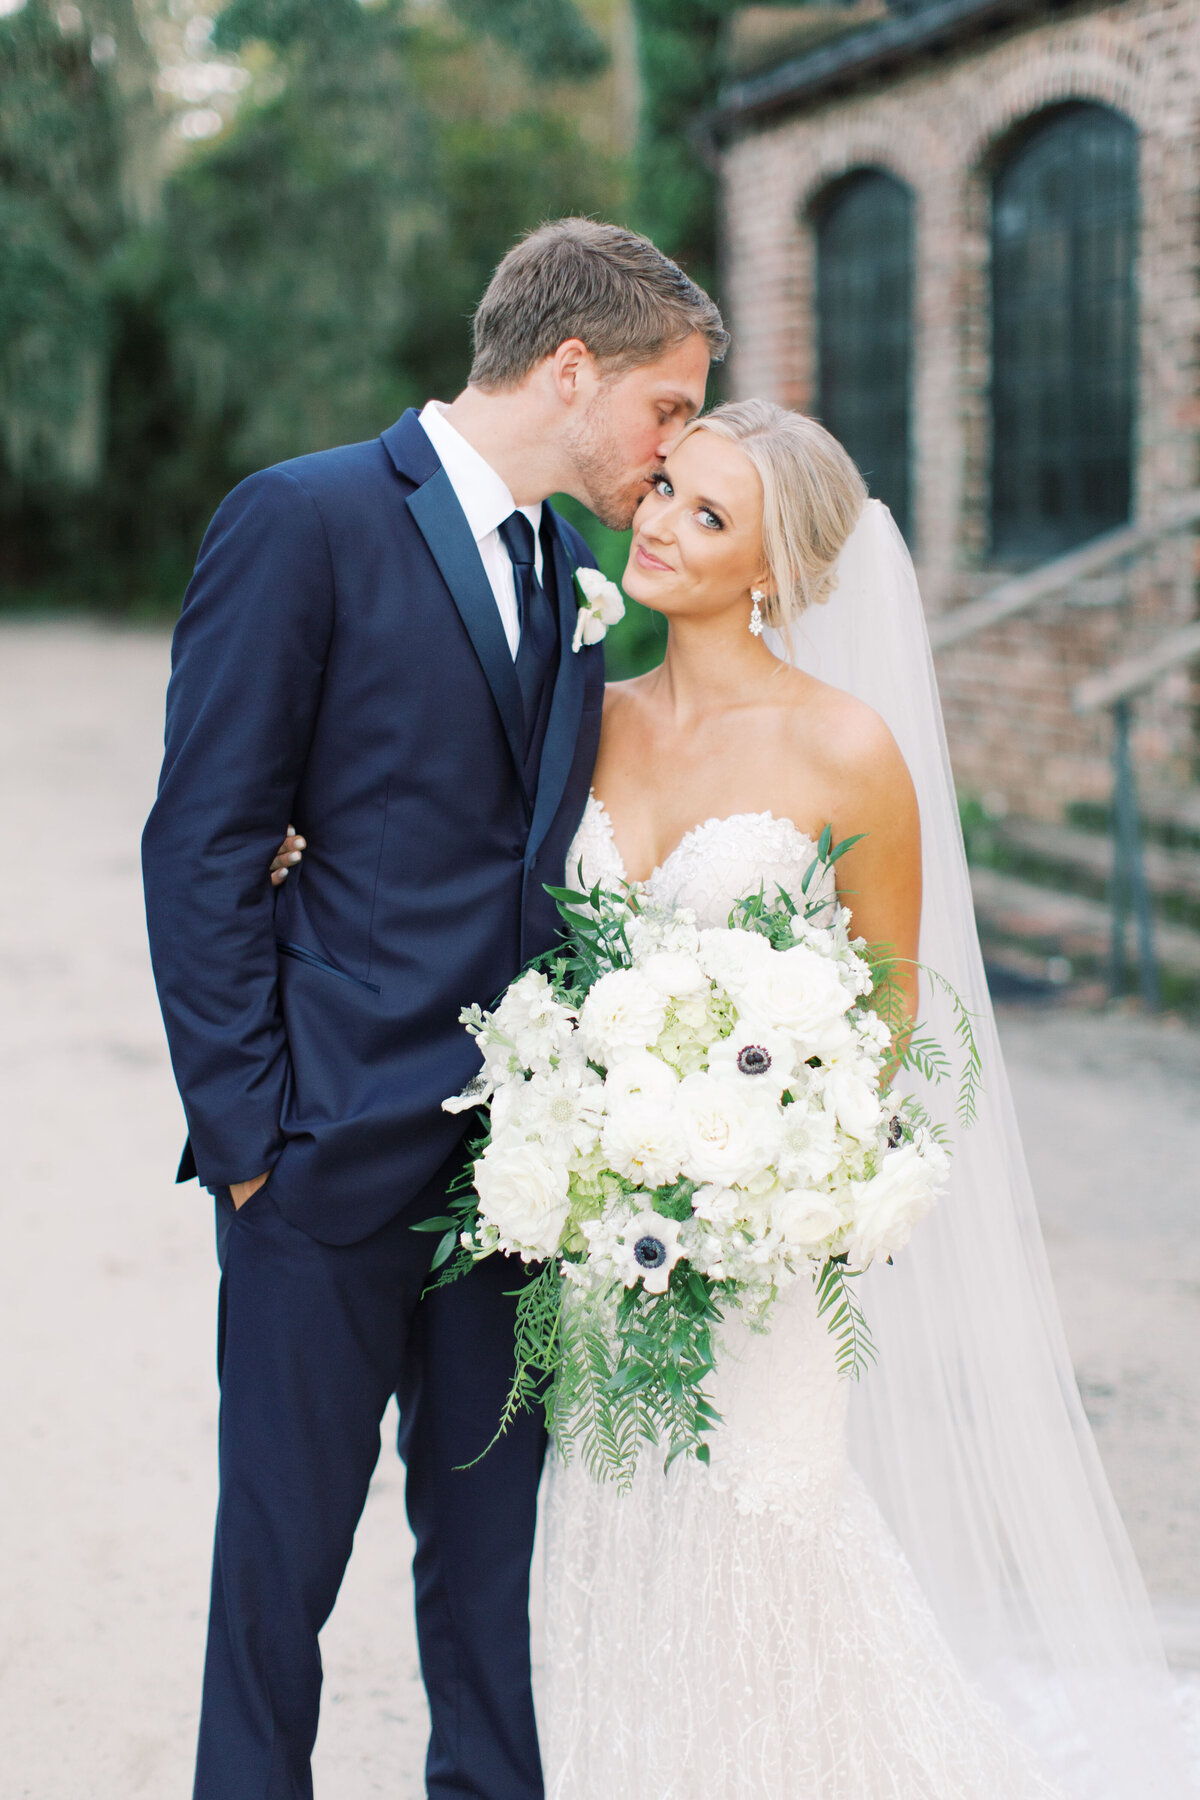 Melton_Wedding__Middleton_Place_Plantation_Charleston_South_Carolina_Jacksonville_Florida_Devon_Donnahoo_Photography__0802